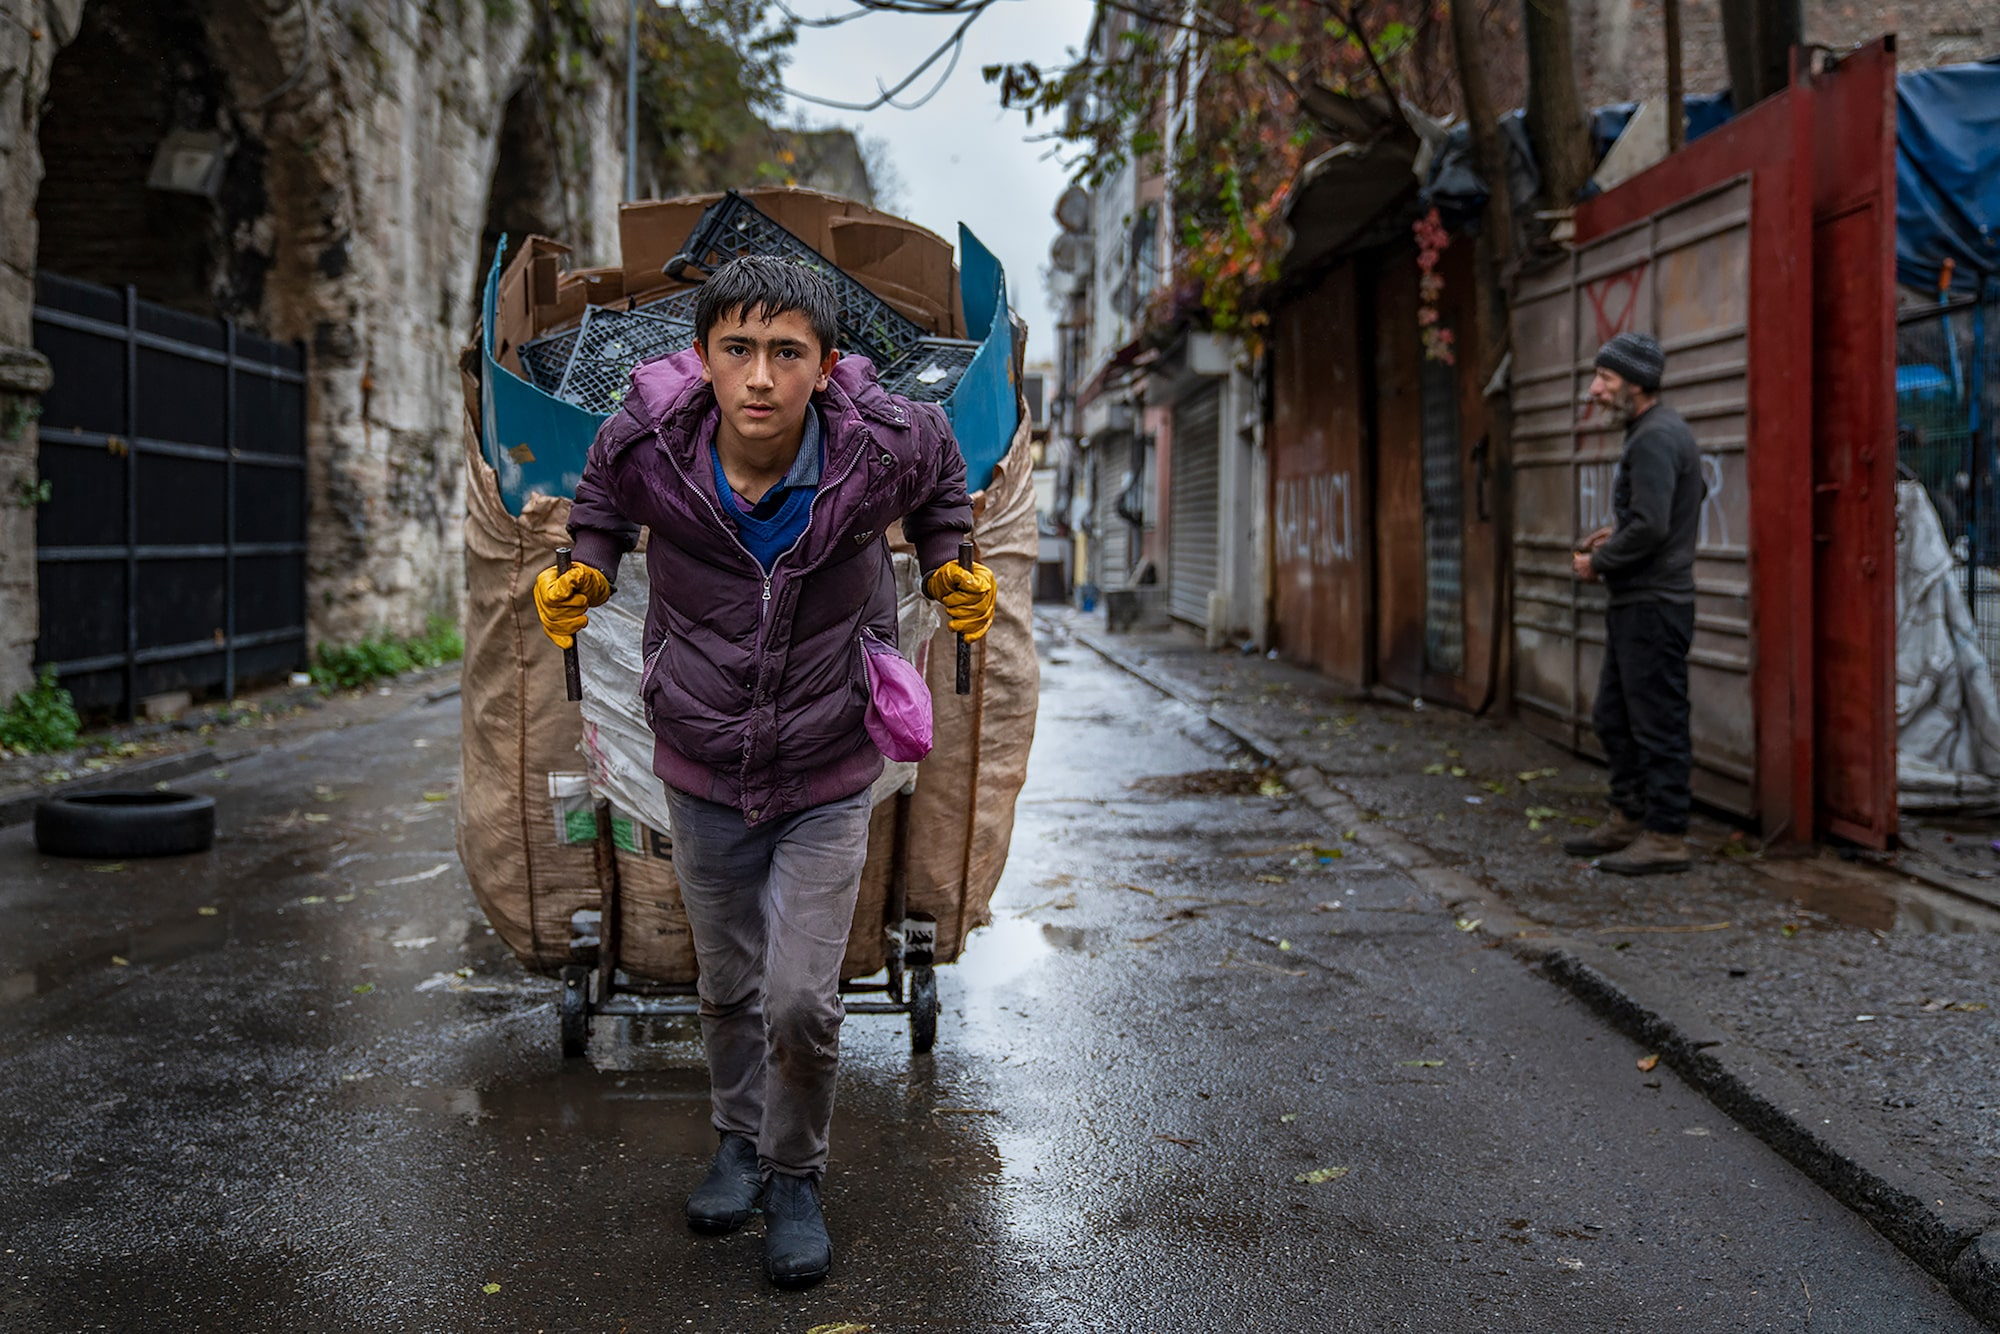 murat pulat sony alpha 7RIII young lad pulling a cart along the street in istanbul